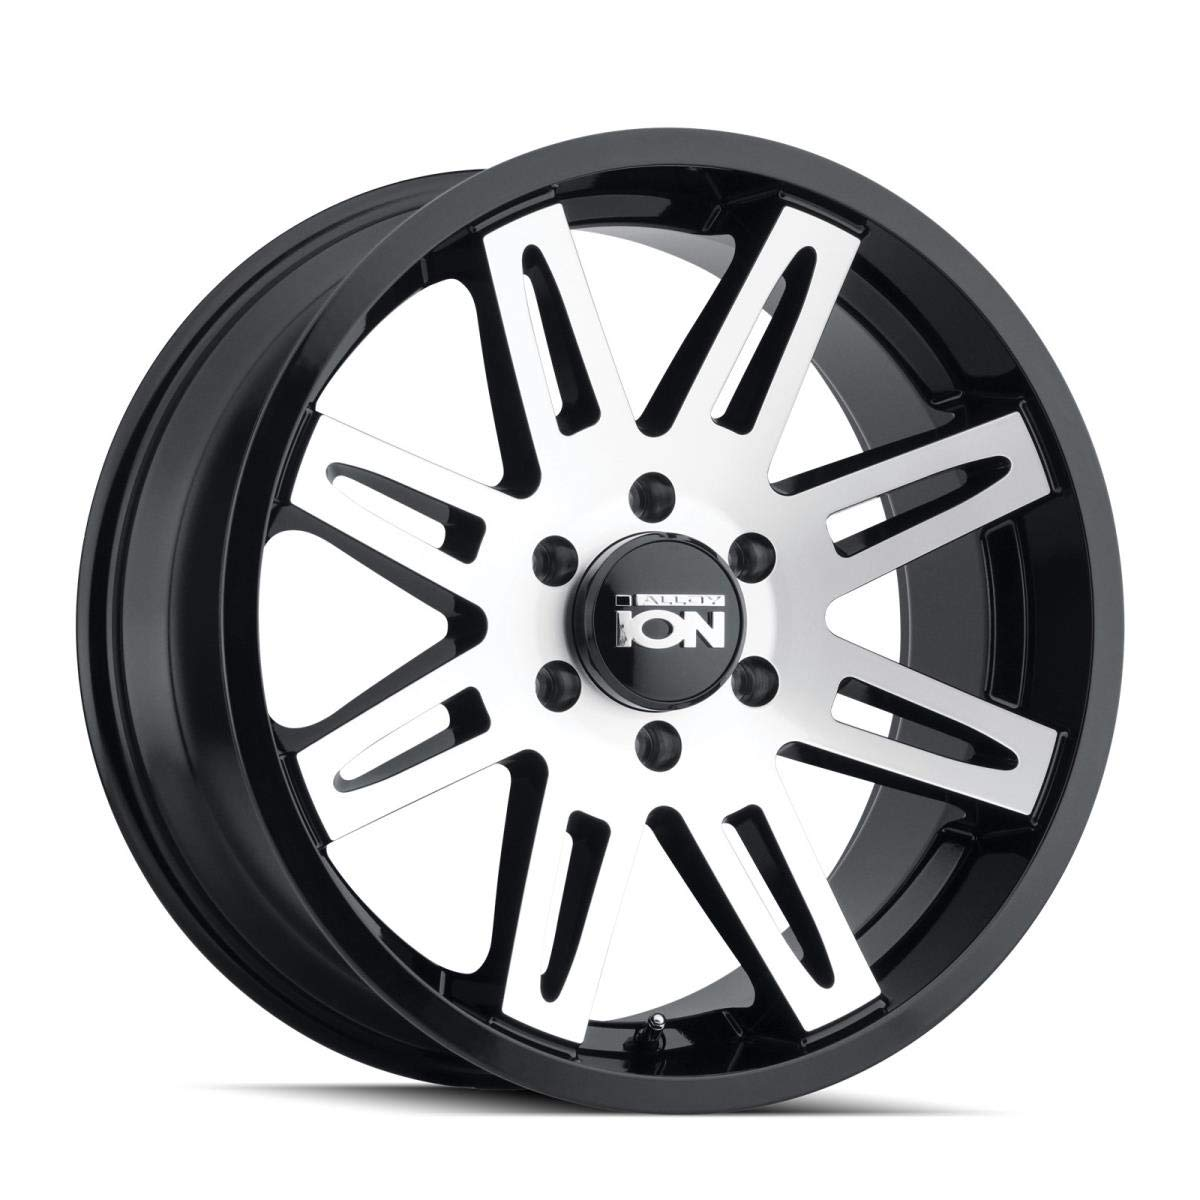 17 x 8. inches //5 x 87 mm, 10 mm Offset ION 186 Wheel with Black//Machined Face